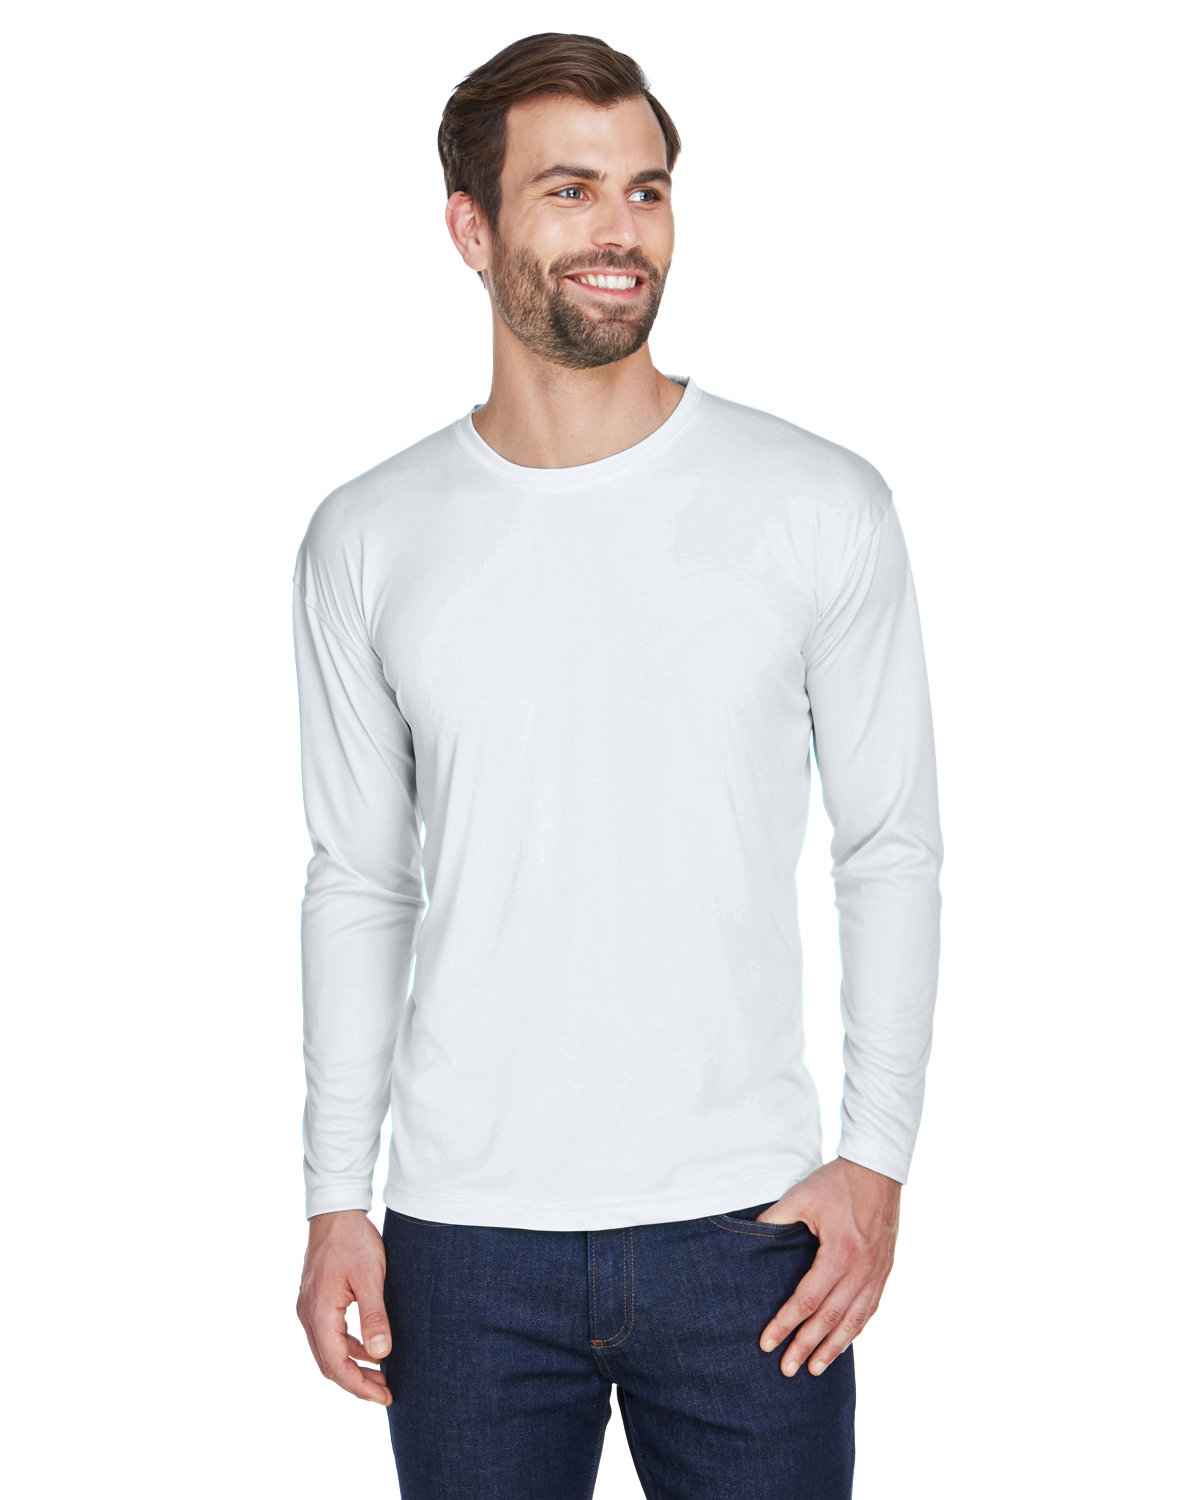 a8e54c5b Front Quarter Back Side. Gallery View Download HiRes Design Studio. 8422  UltraClub Adult Cool & Dry Sport Long-Sleeve Performance Interlock T-Shirt